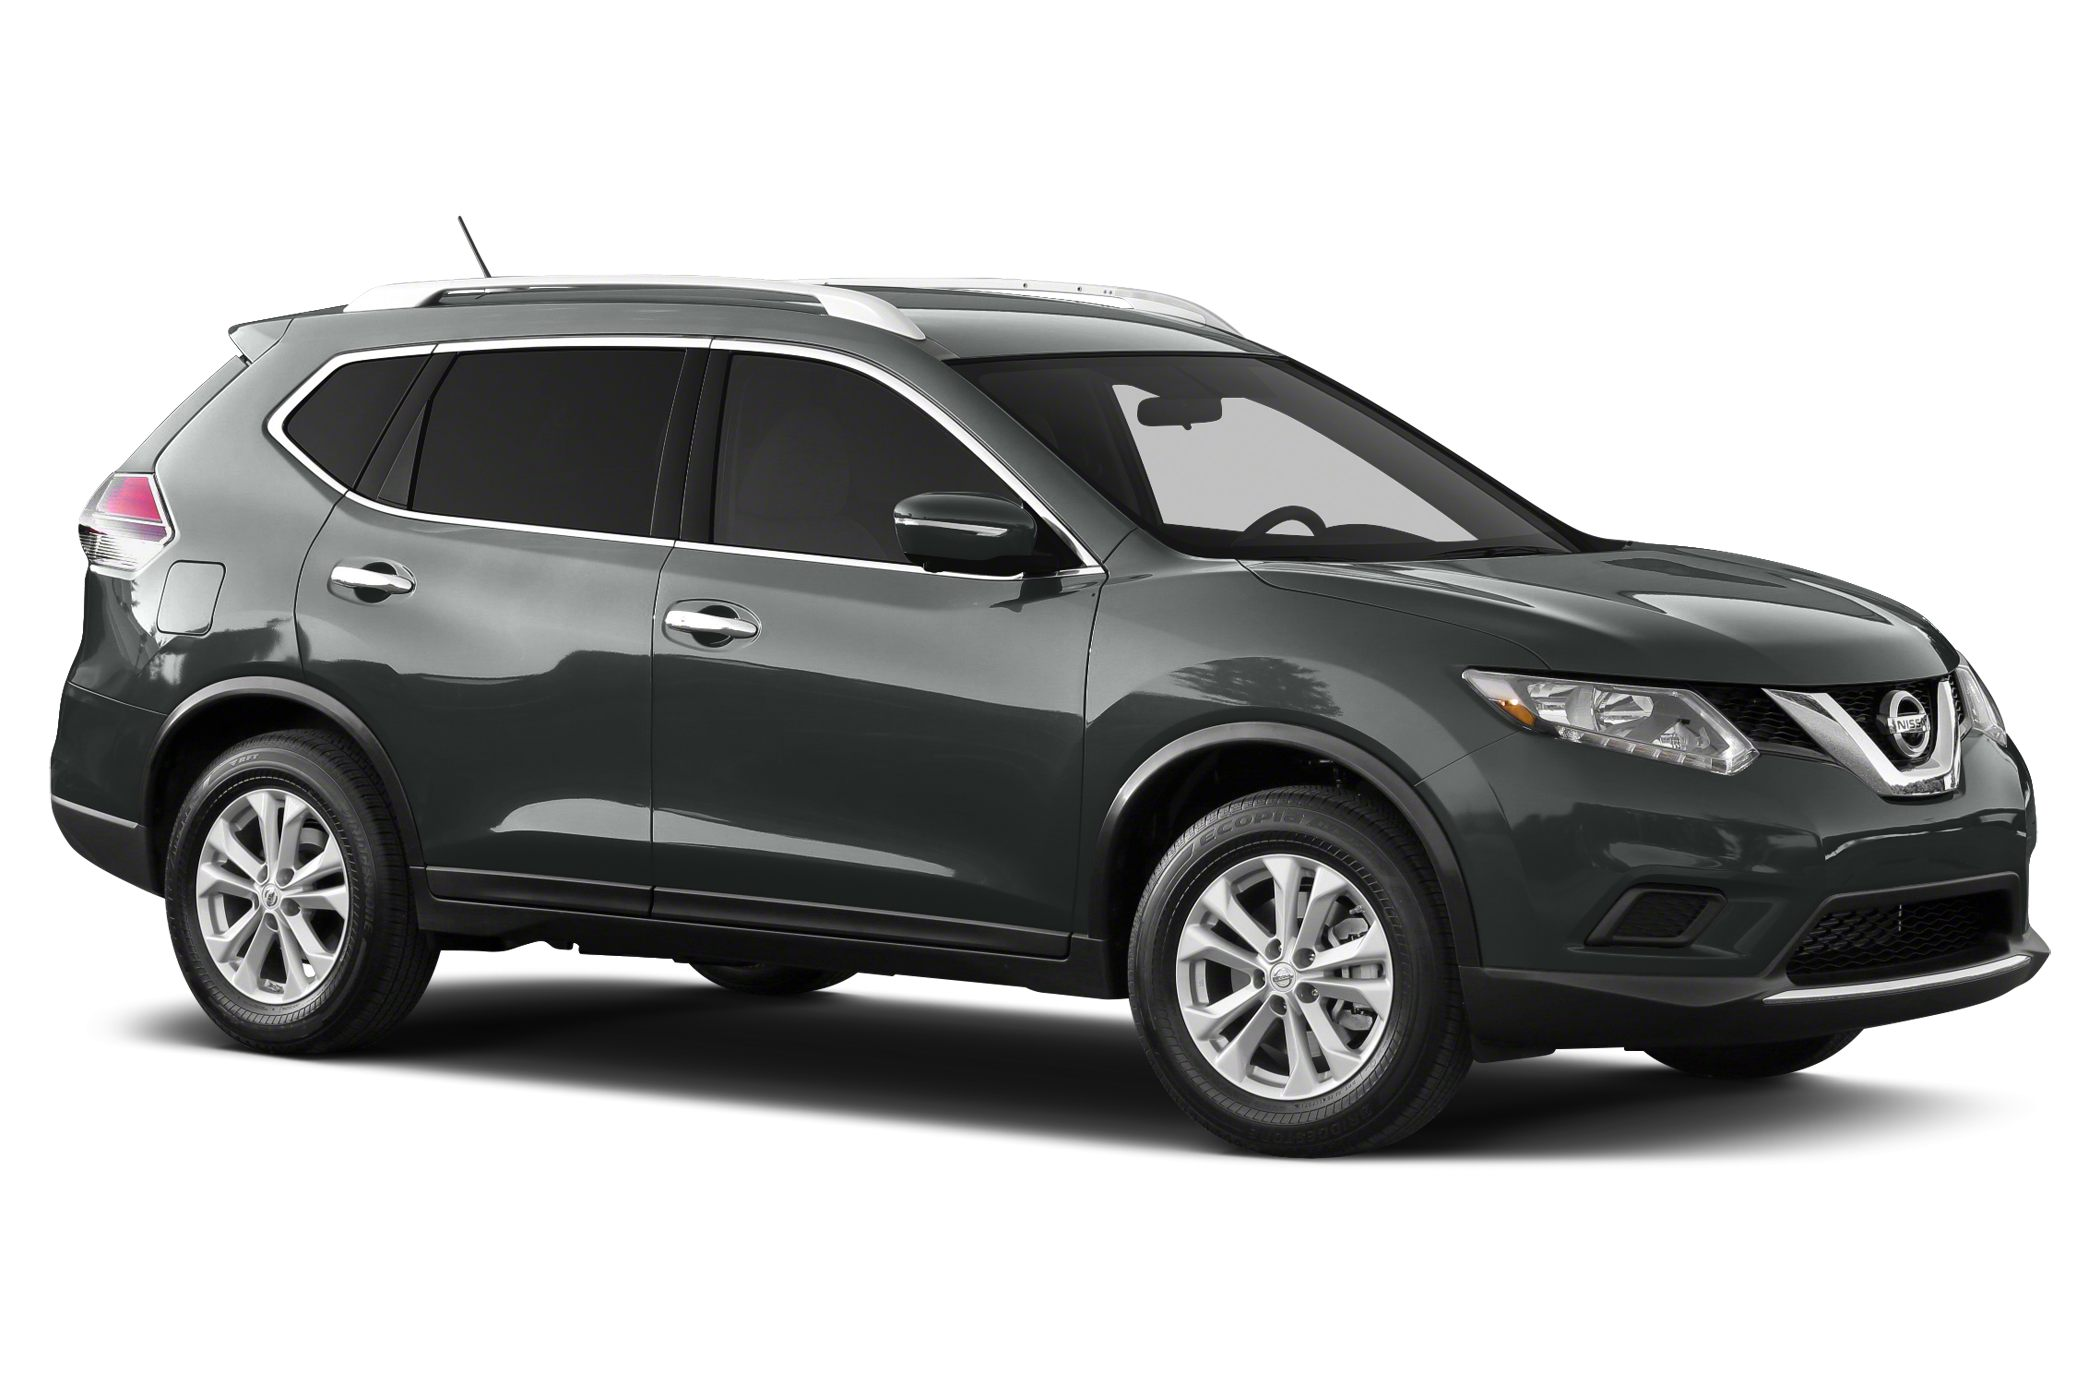 2014 nissan rogue information and photos zombiedrive 2014 nissan rogue 11 nissan rogue 11 vanachro Image collections